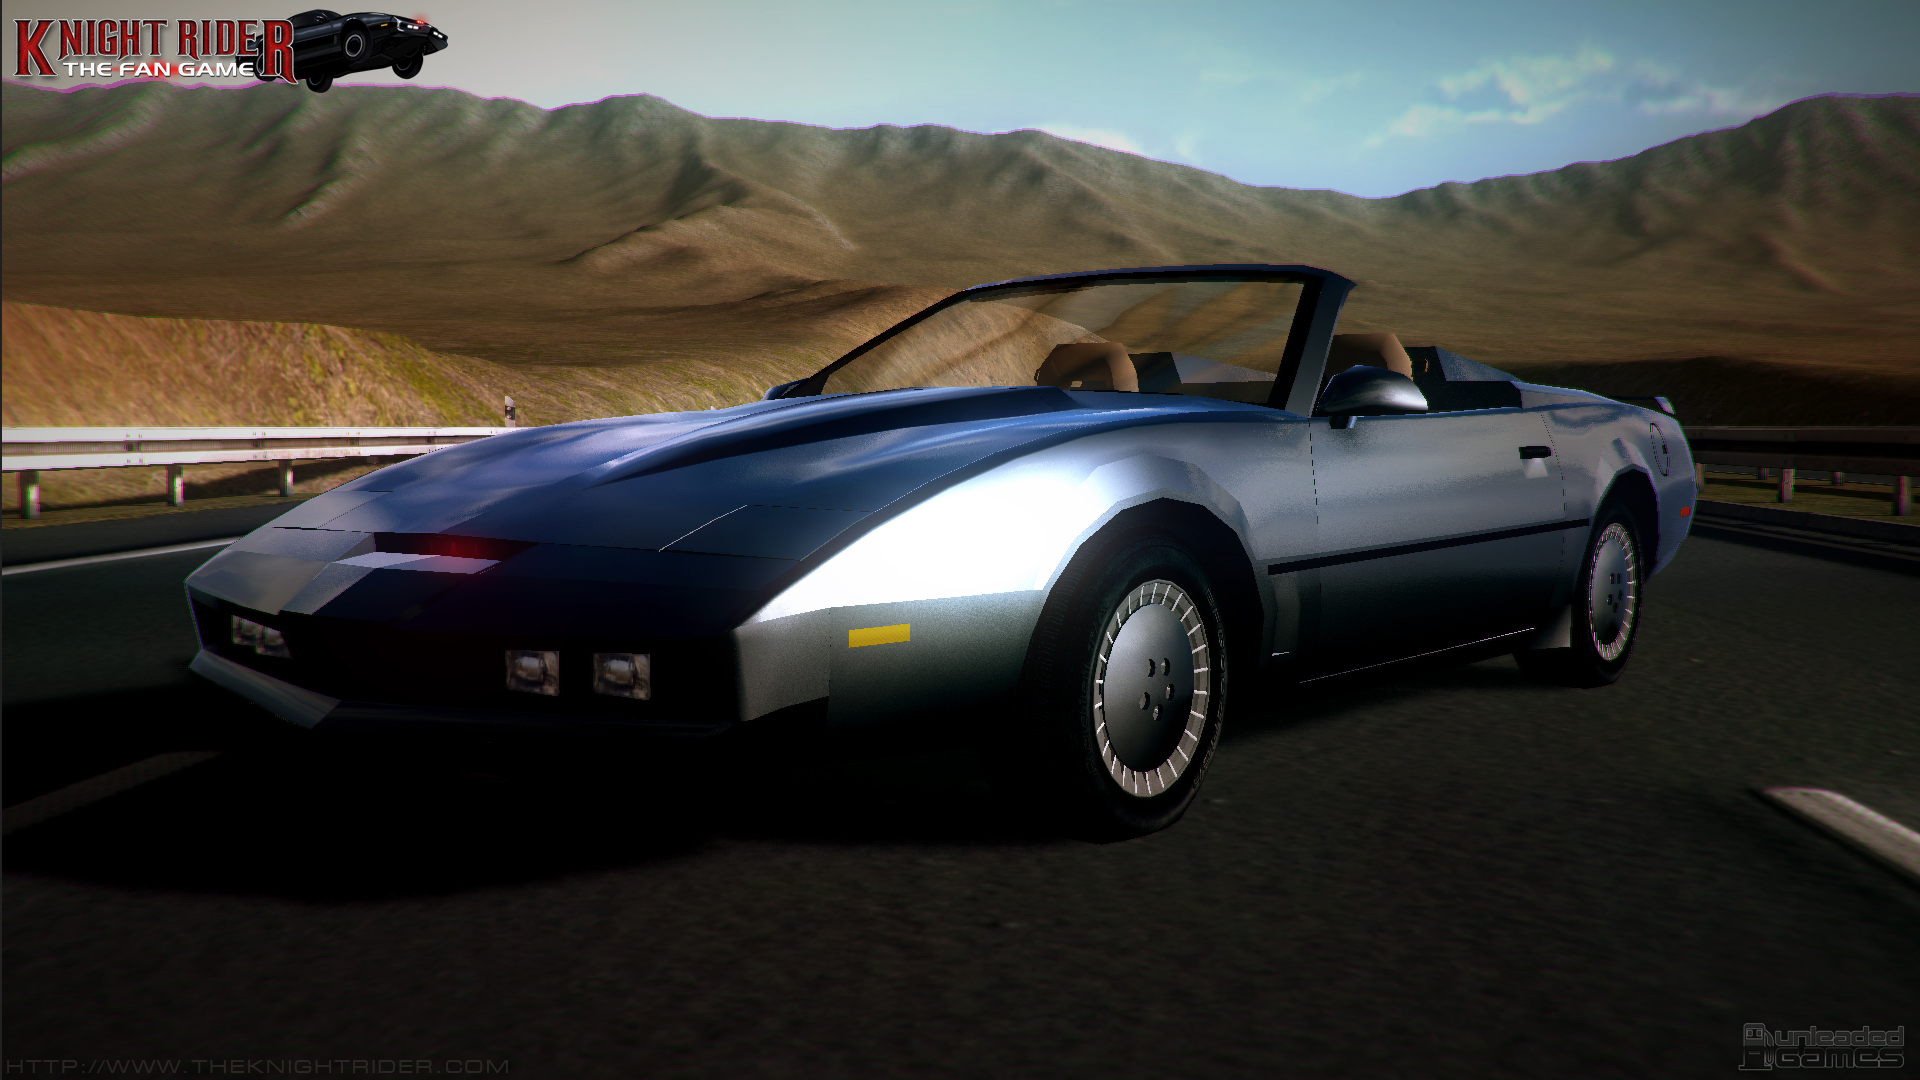 Related Pictures knight rider wallpapers knight rider kitt wallpaper 1920x1080